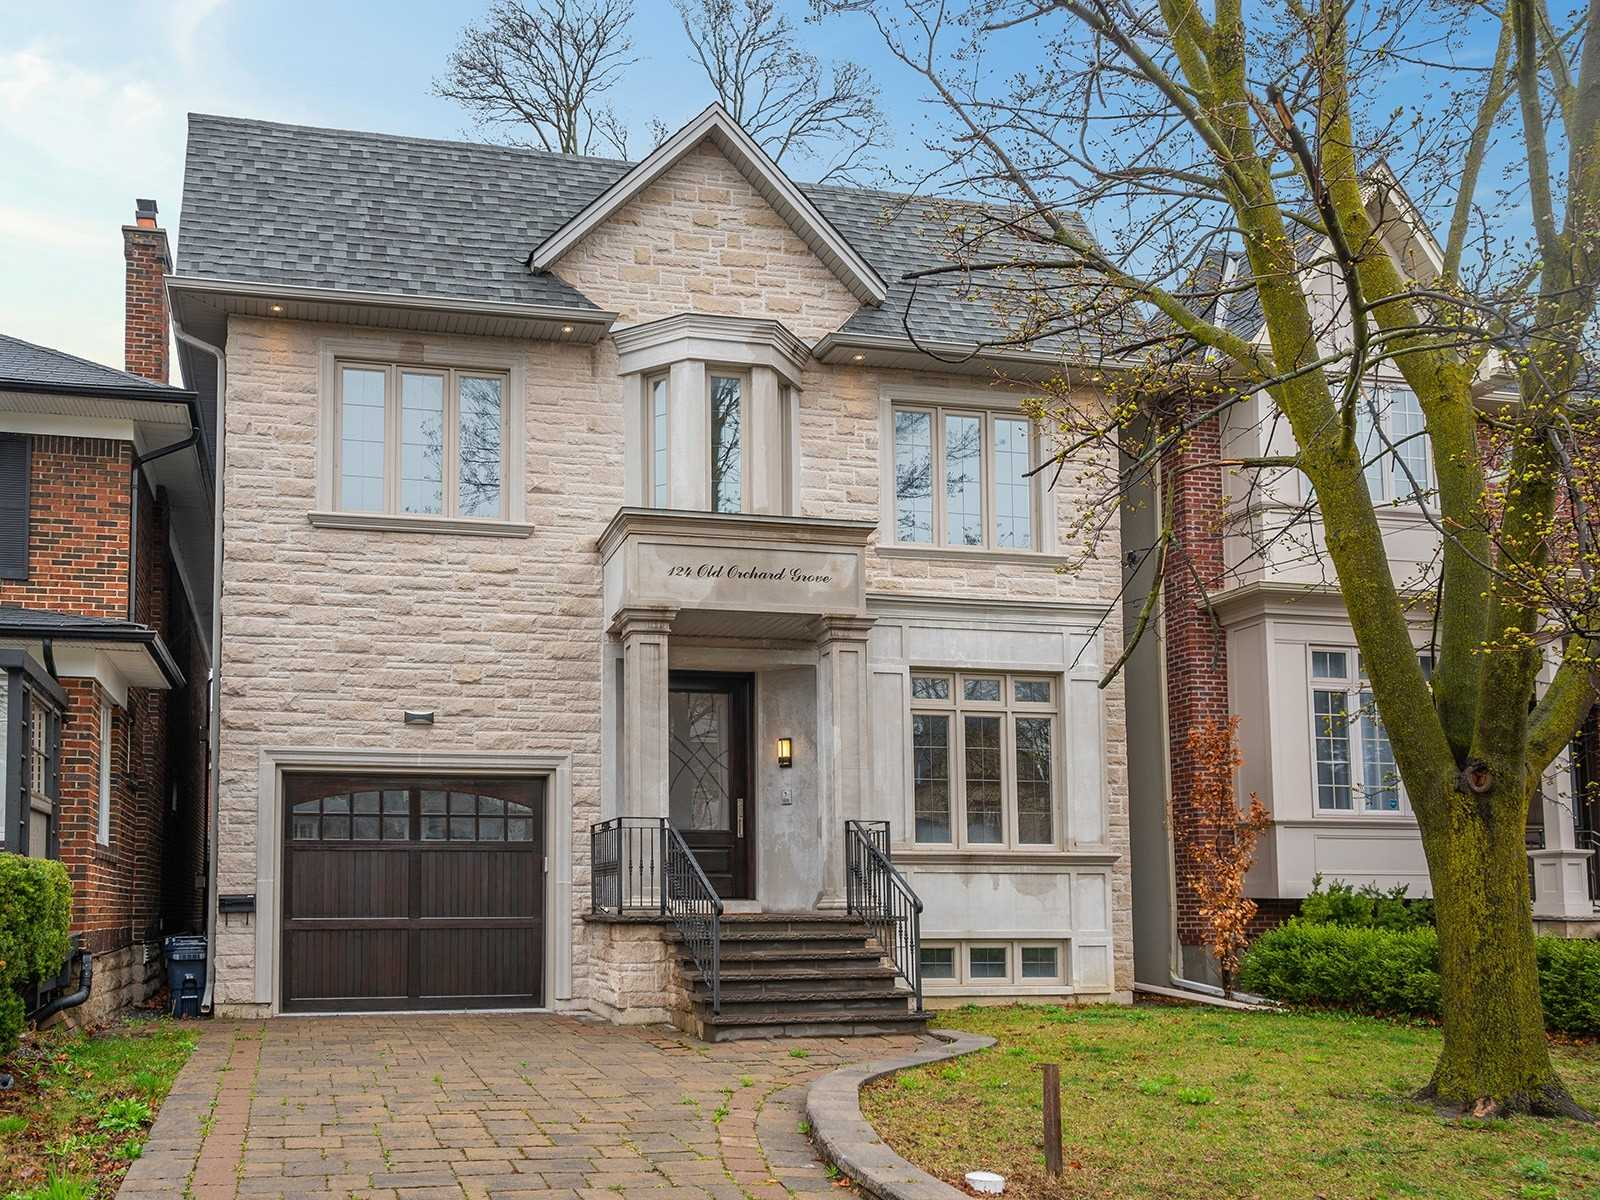 124 Old Orchard Grve, Toronto, Ontario M5M2E2, 4 Bedrooms Bedrooms, 10 Rooms Rooms,6 BathroomsBathrooms,Detached,For Sale,Old Orchard,C5192790